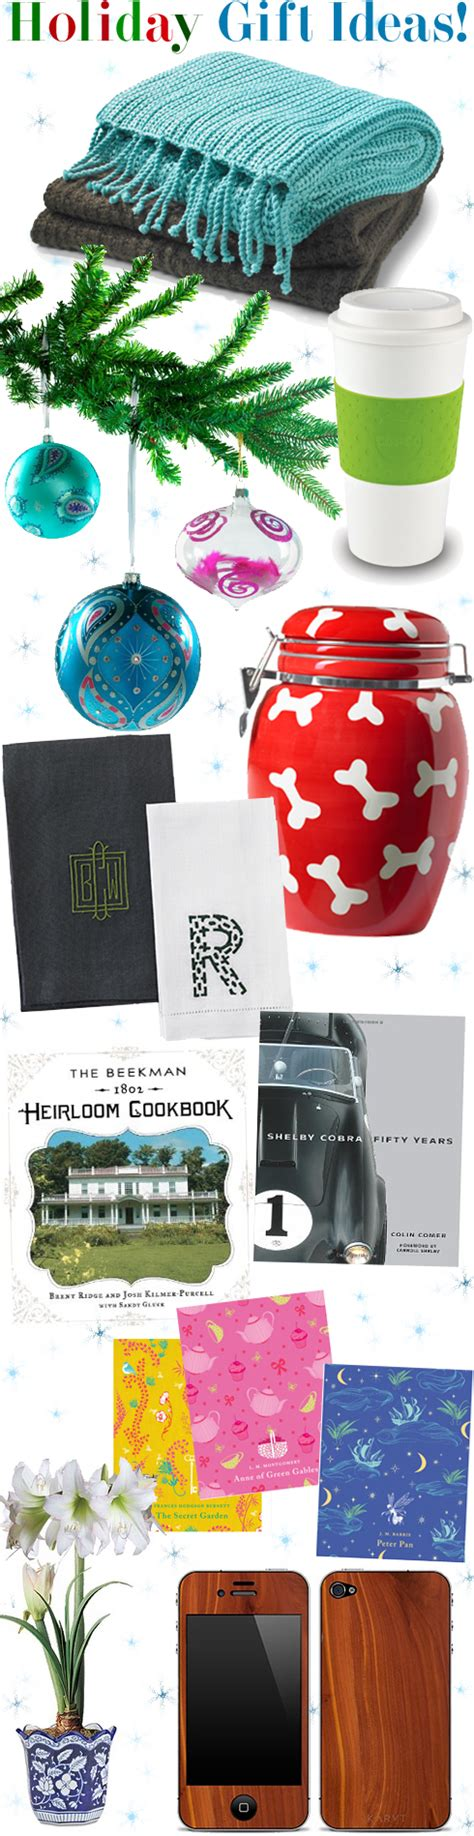 homegoods surprising holiday gift ideas